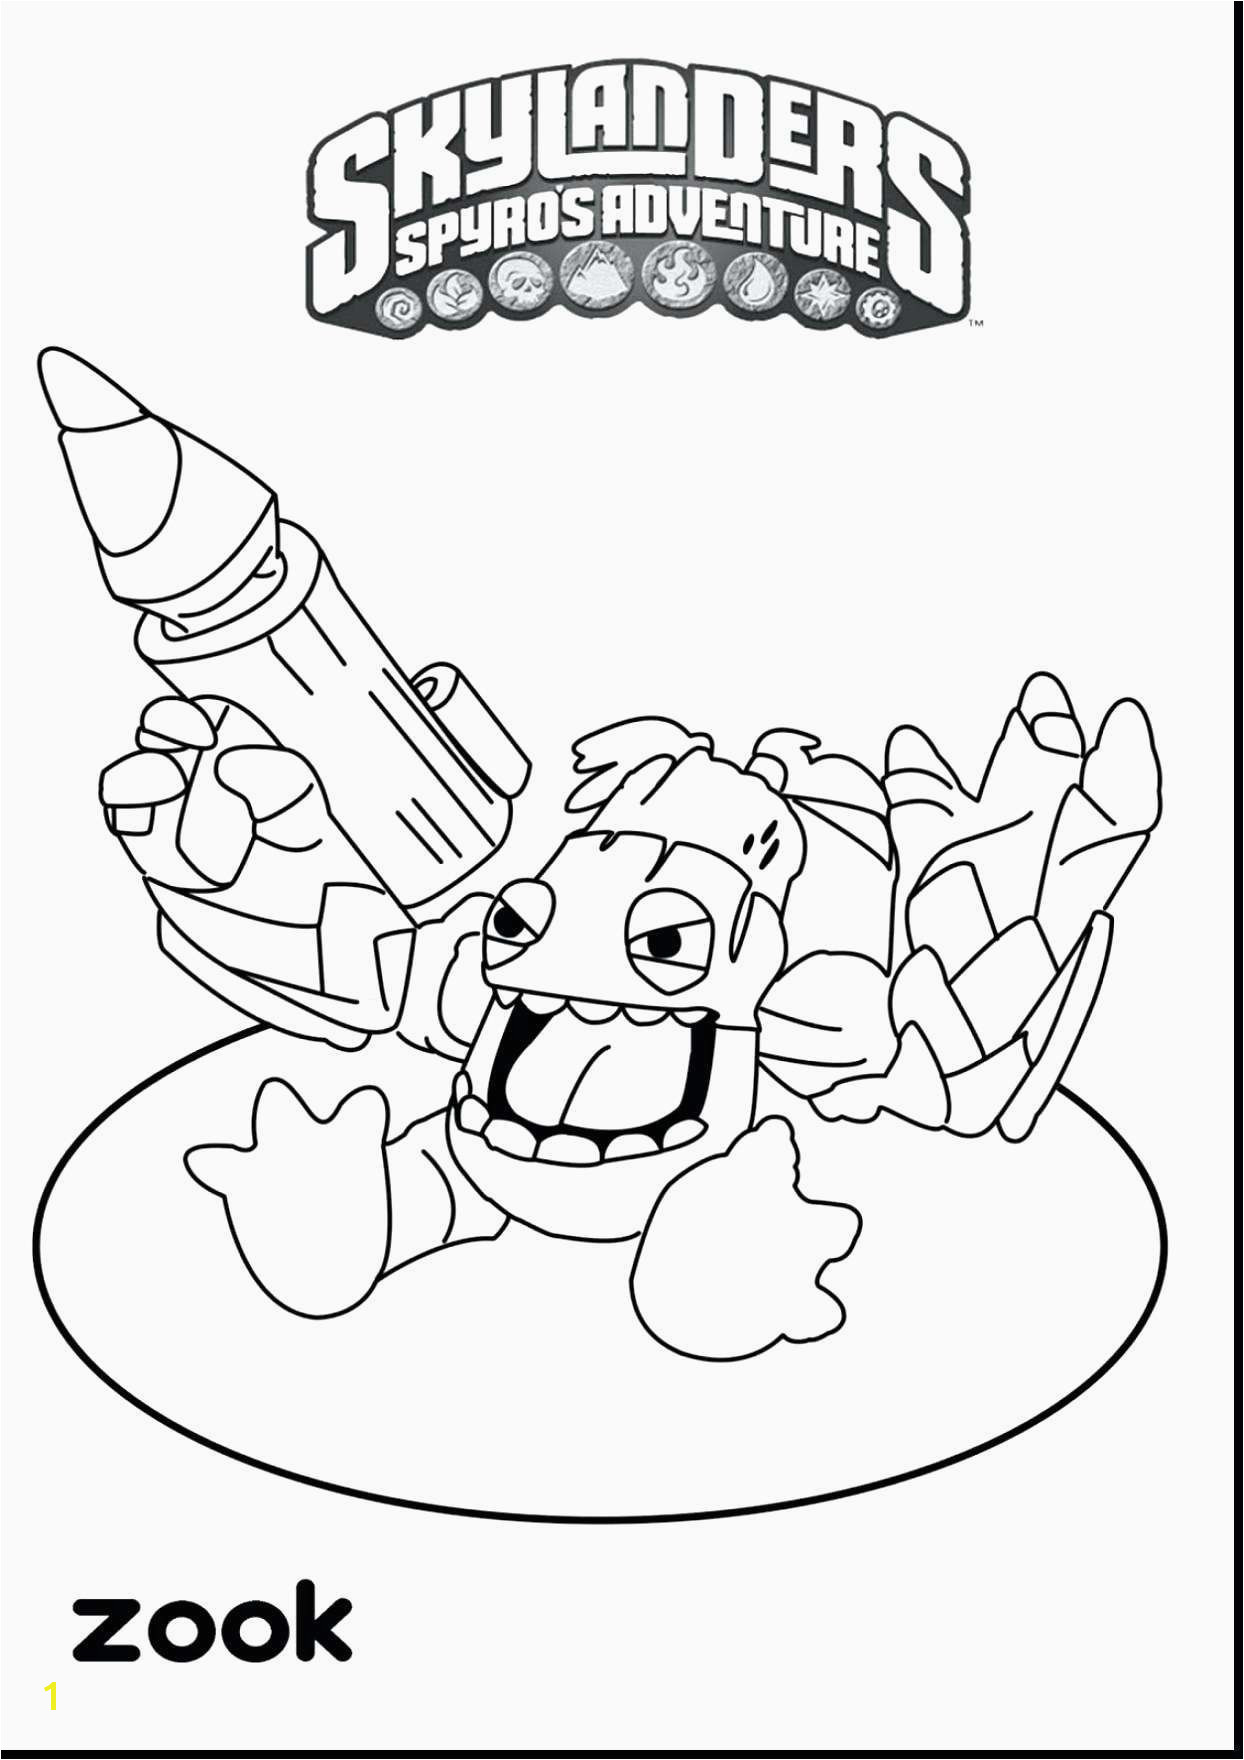 Merry Christmas Printable Coloring Pages Coloring Pages for Christmas Printable Cool Coloring Printables 0d